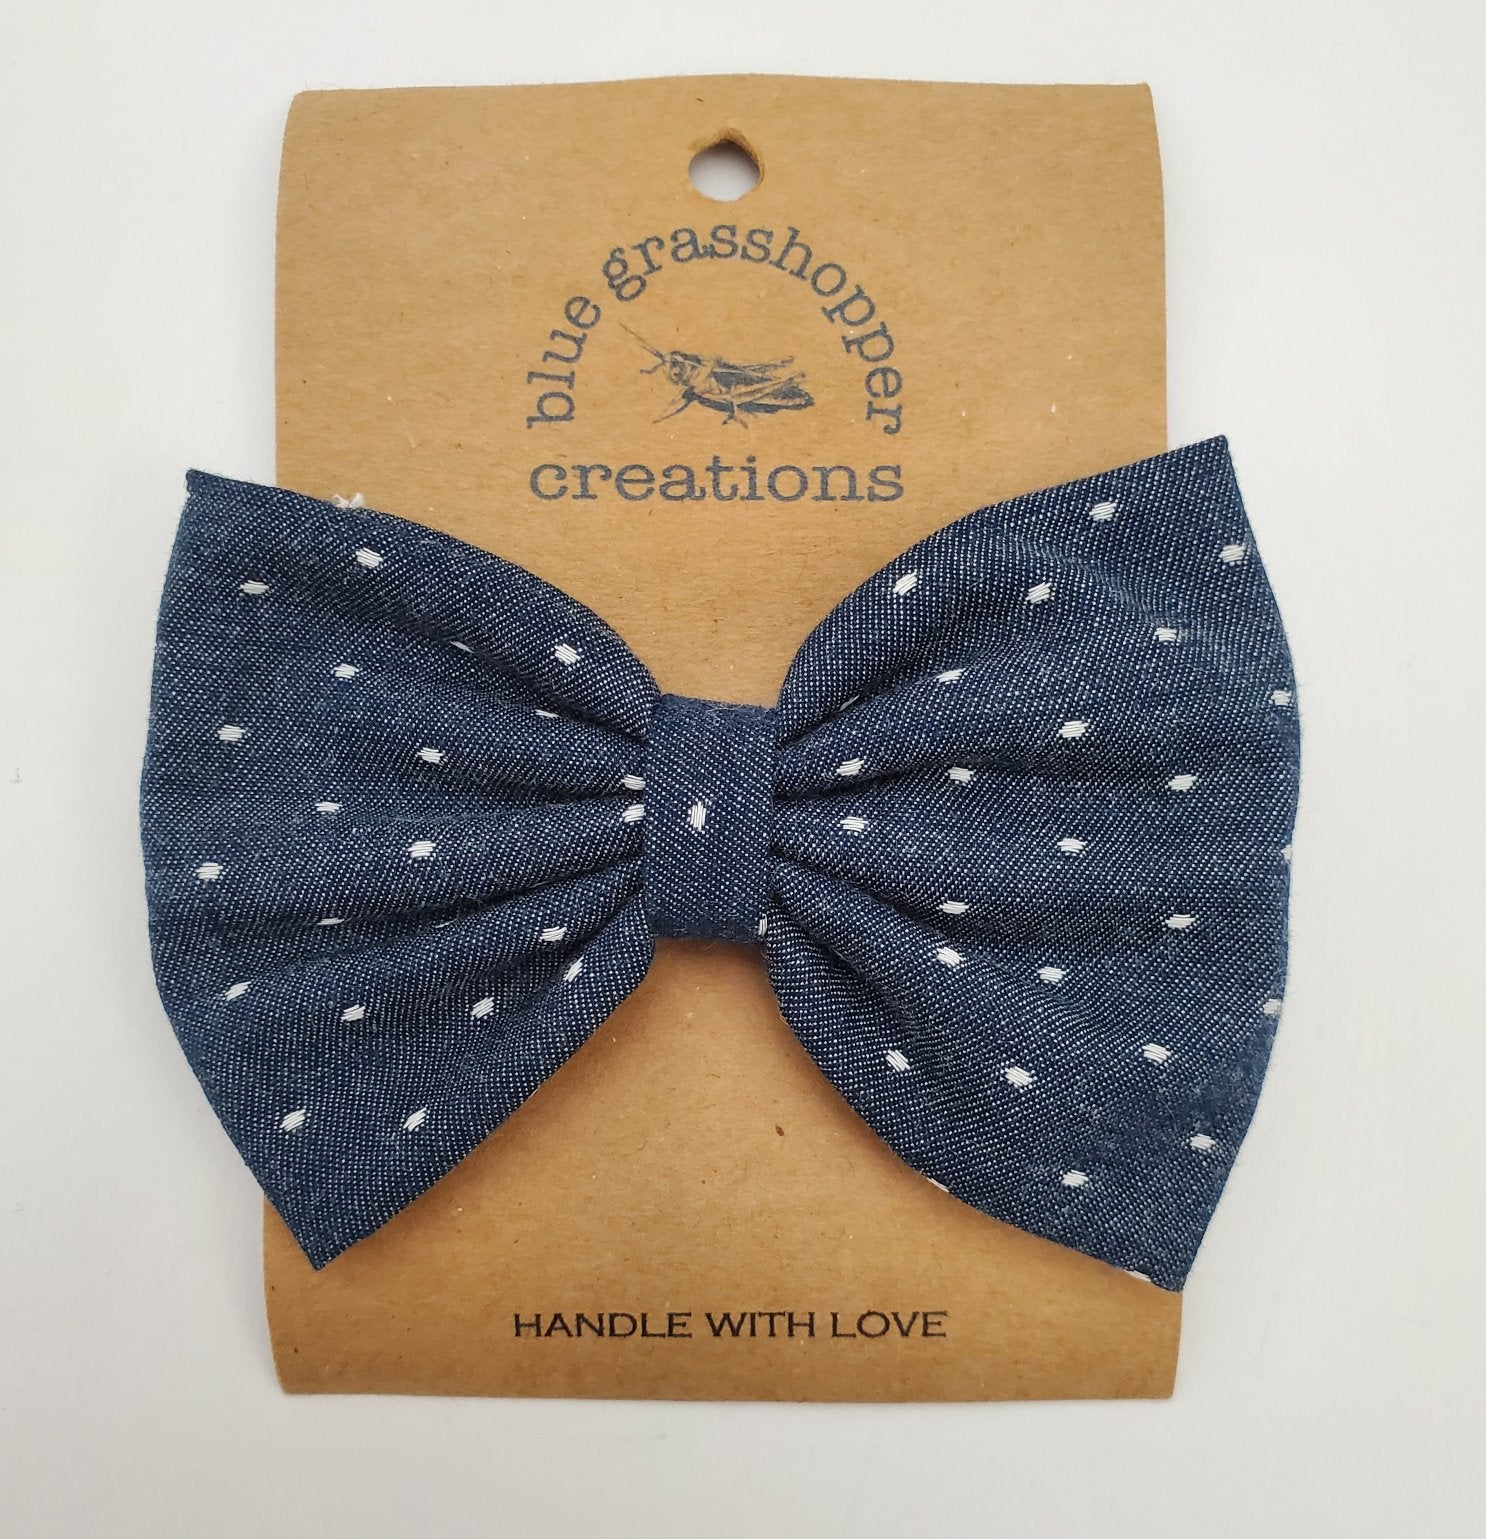 Blue Grasshopper Creations Bow / Bow Tie - Blue Polka Dot